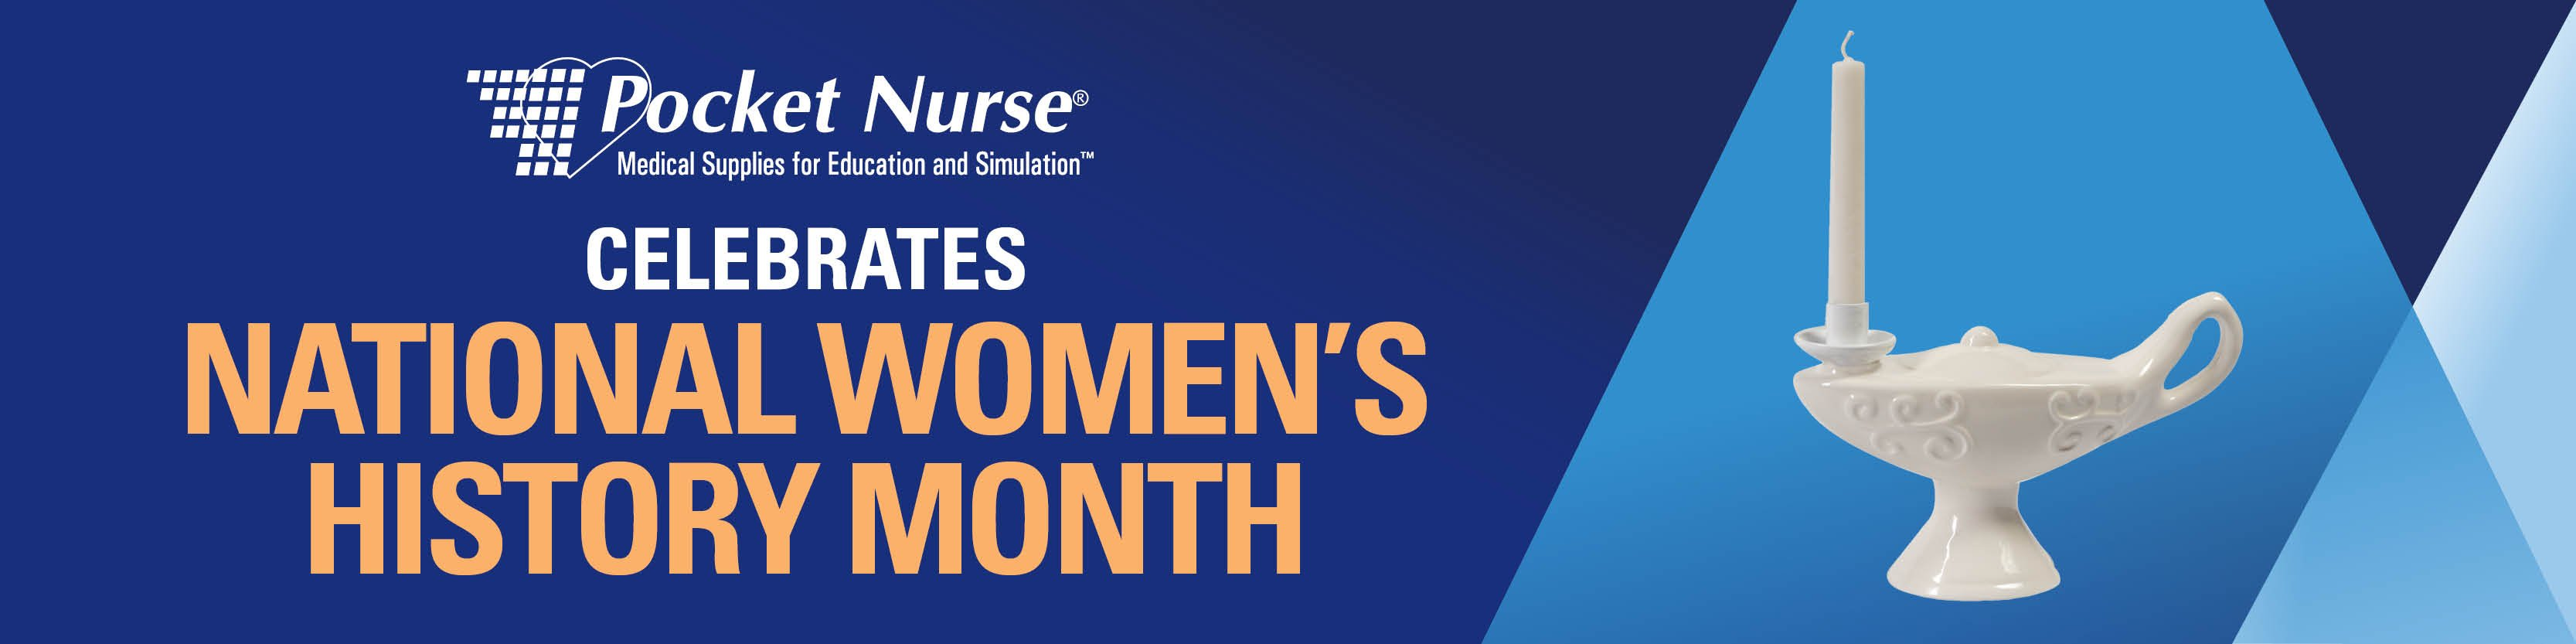 Pocket Nurse and Women's History Month